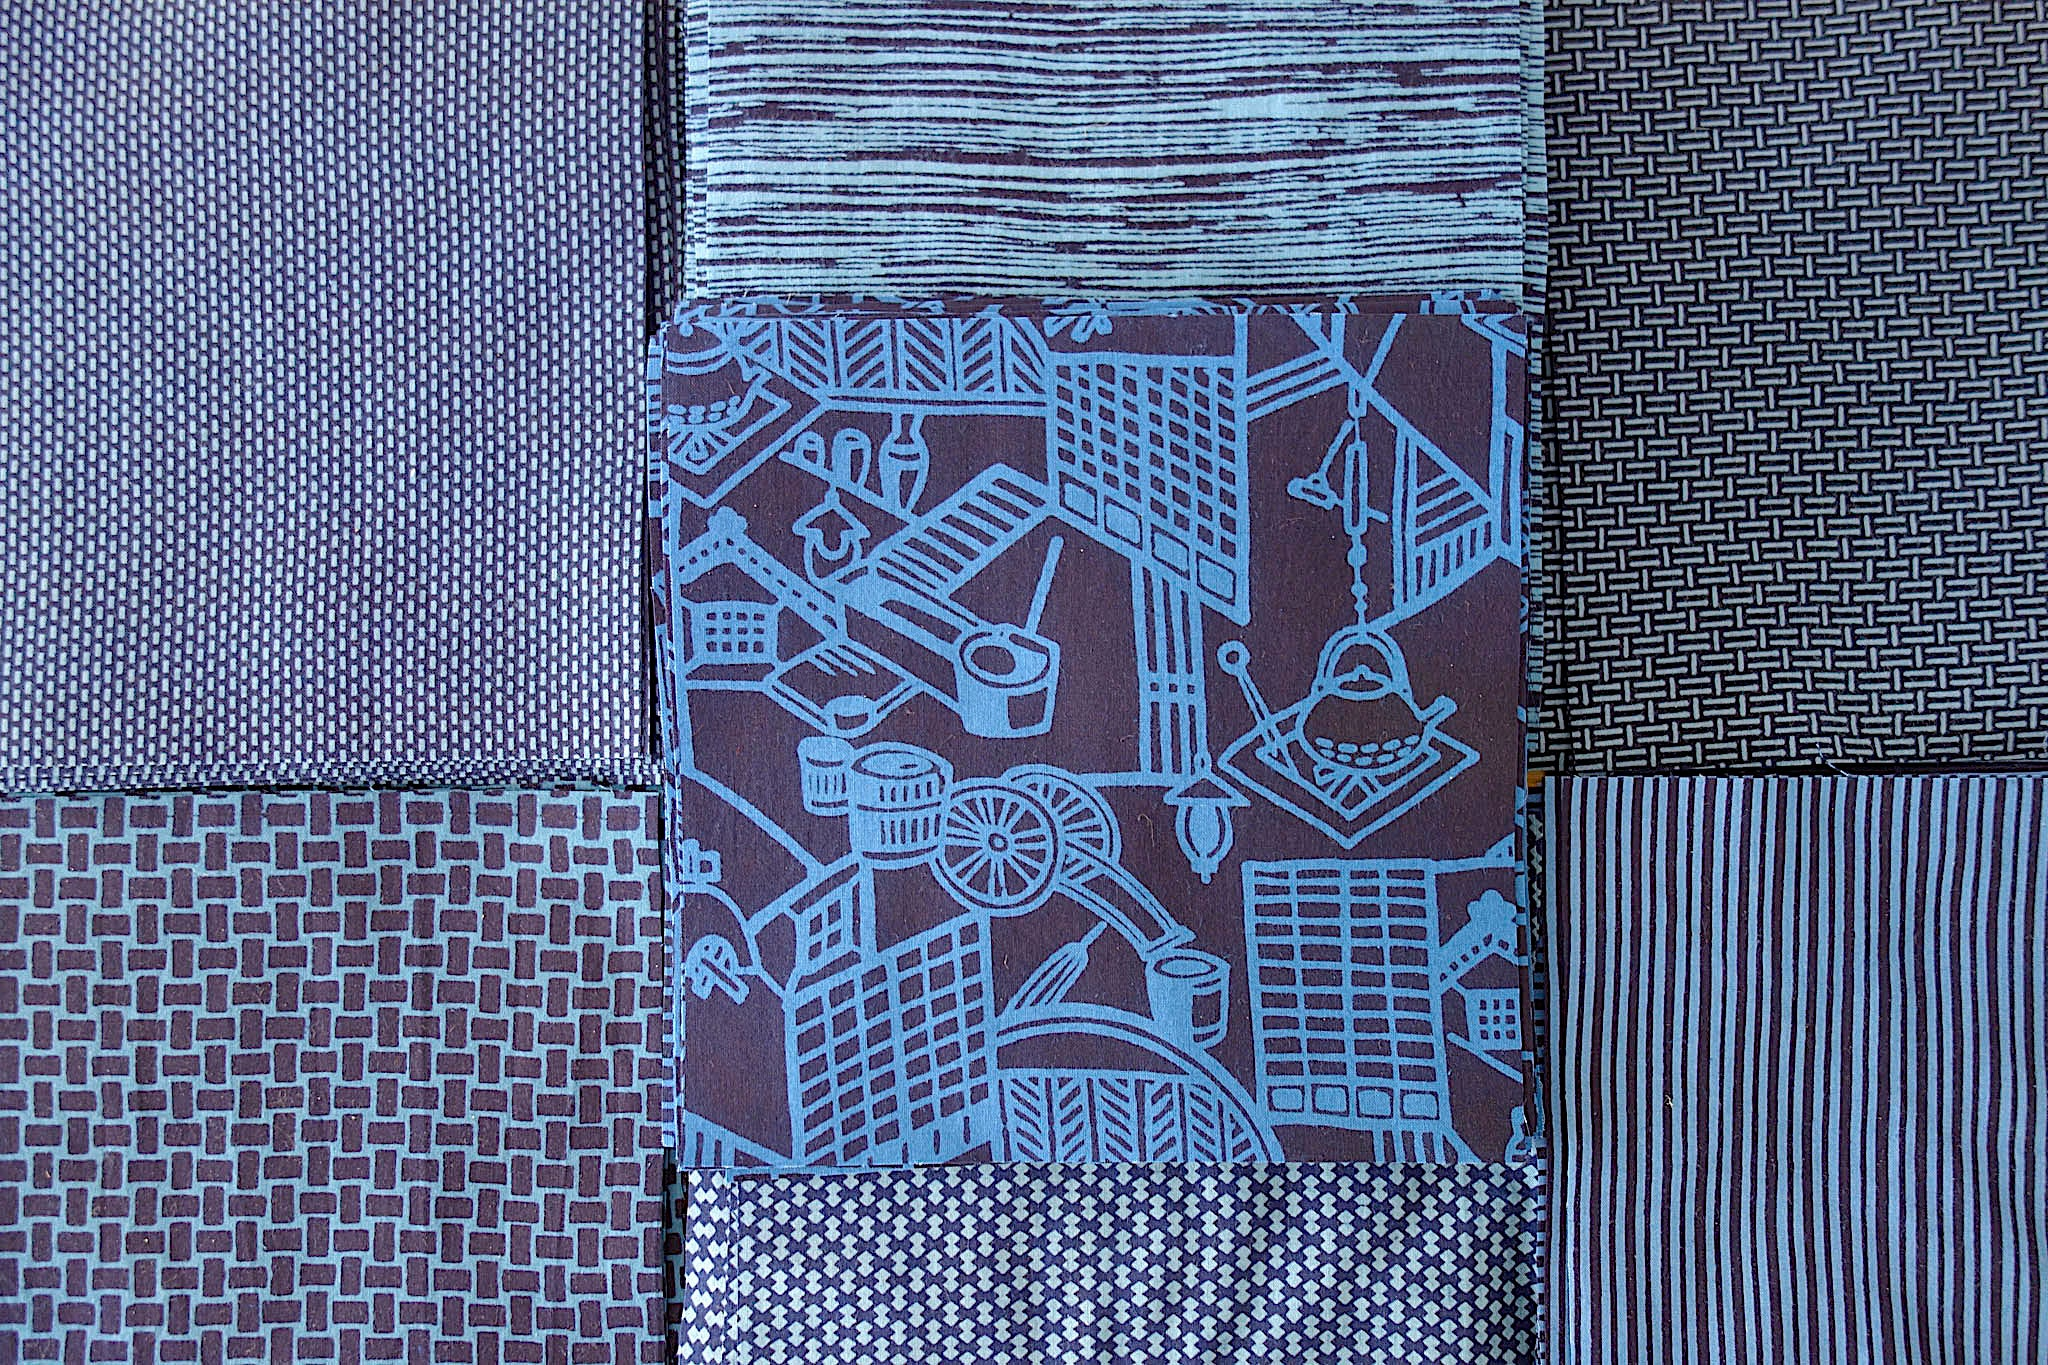 Vintage Japanese yukata cottons cut into quilt blocks for Indiglow, a king-sized quilt made by Patricia Belyea